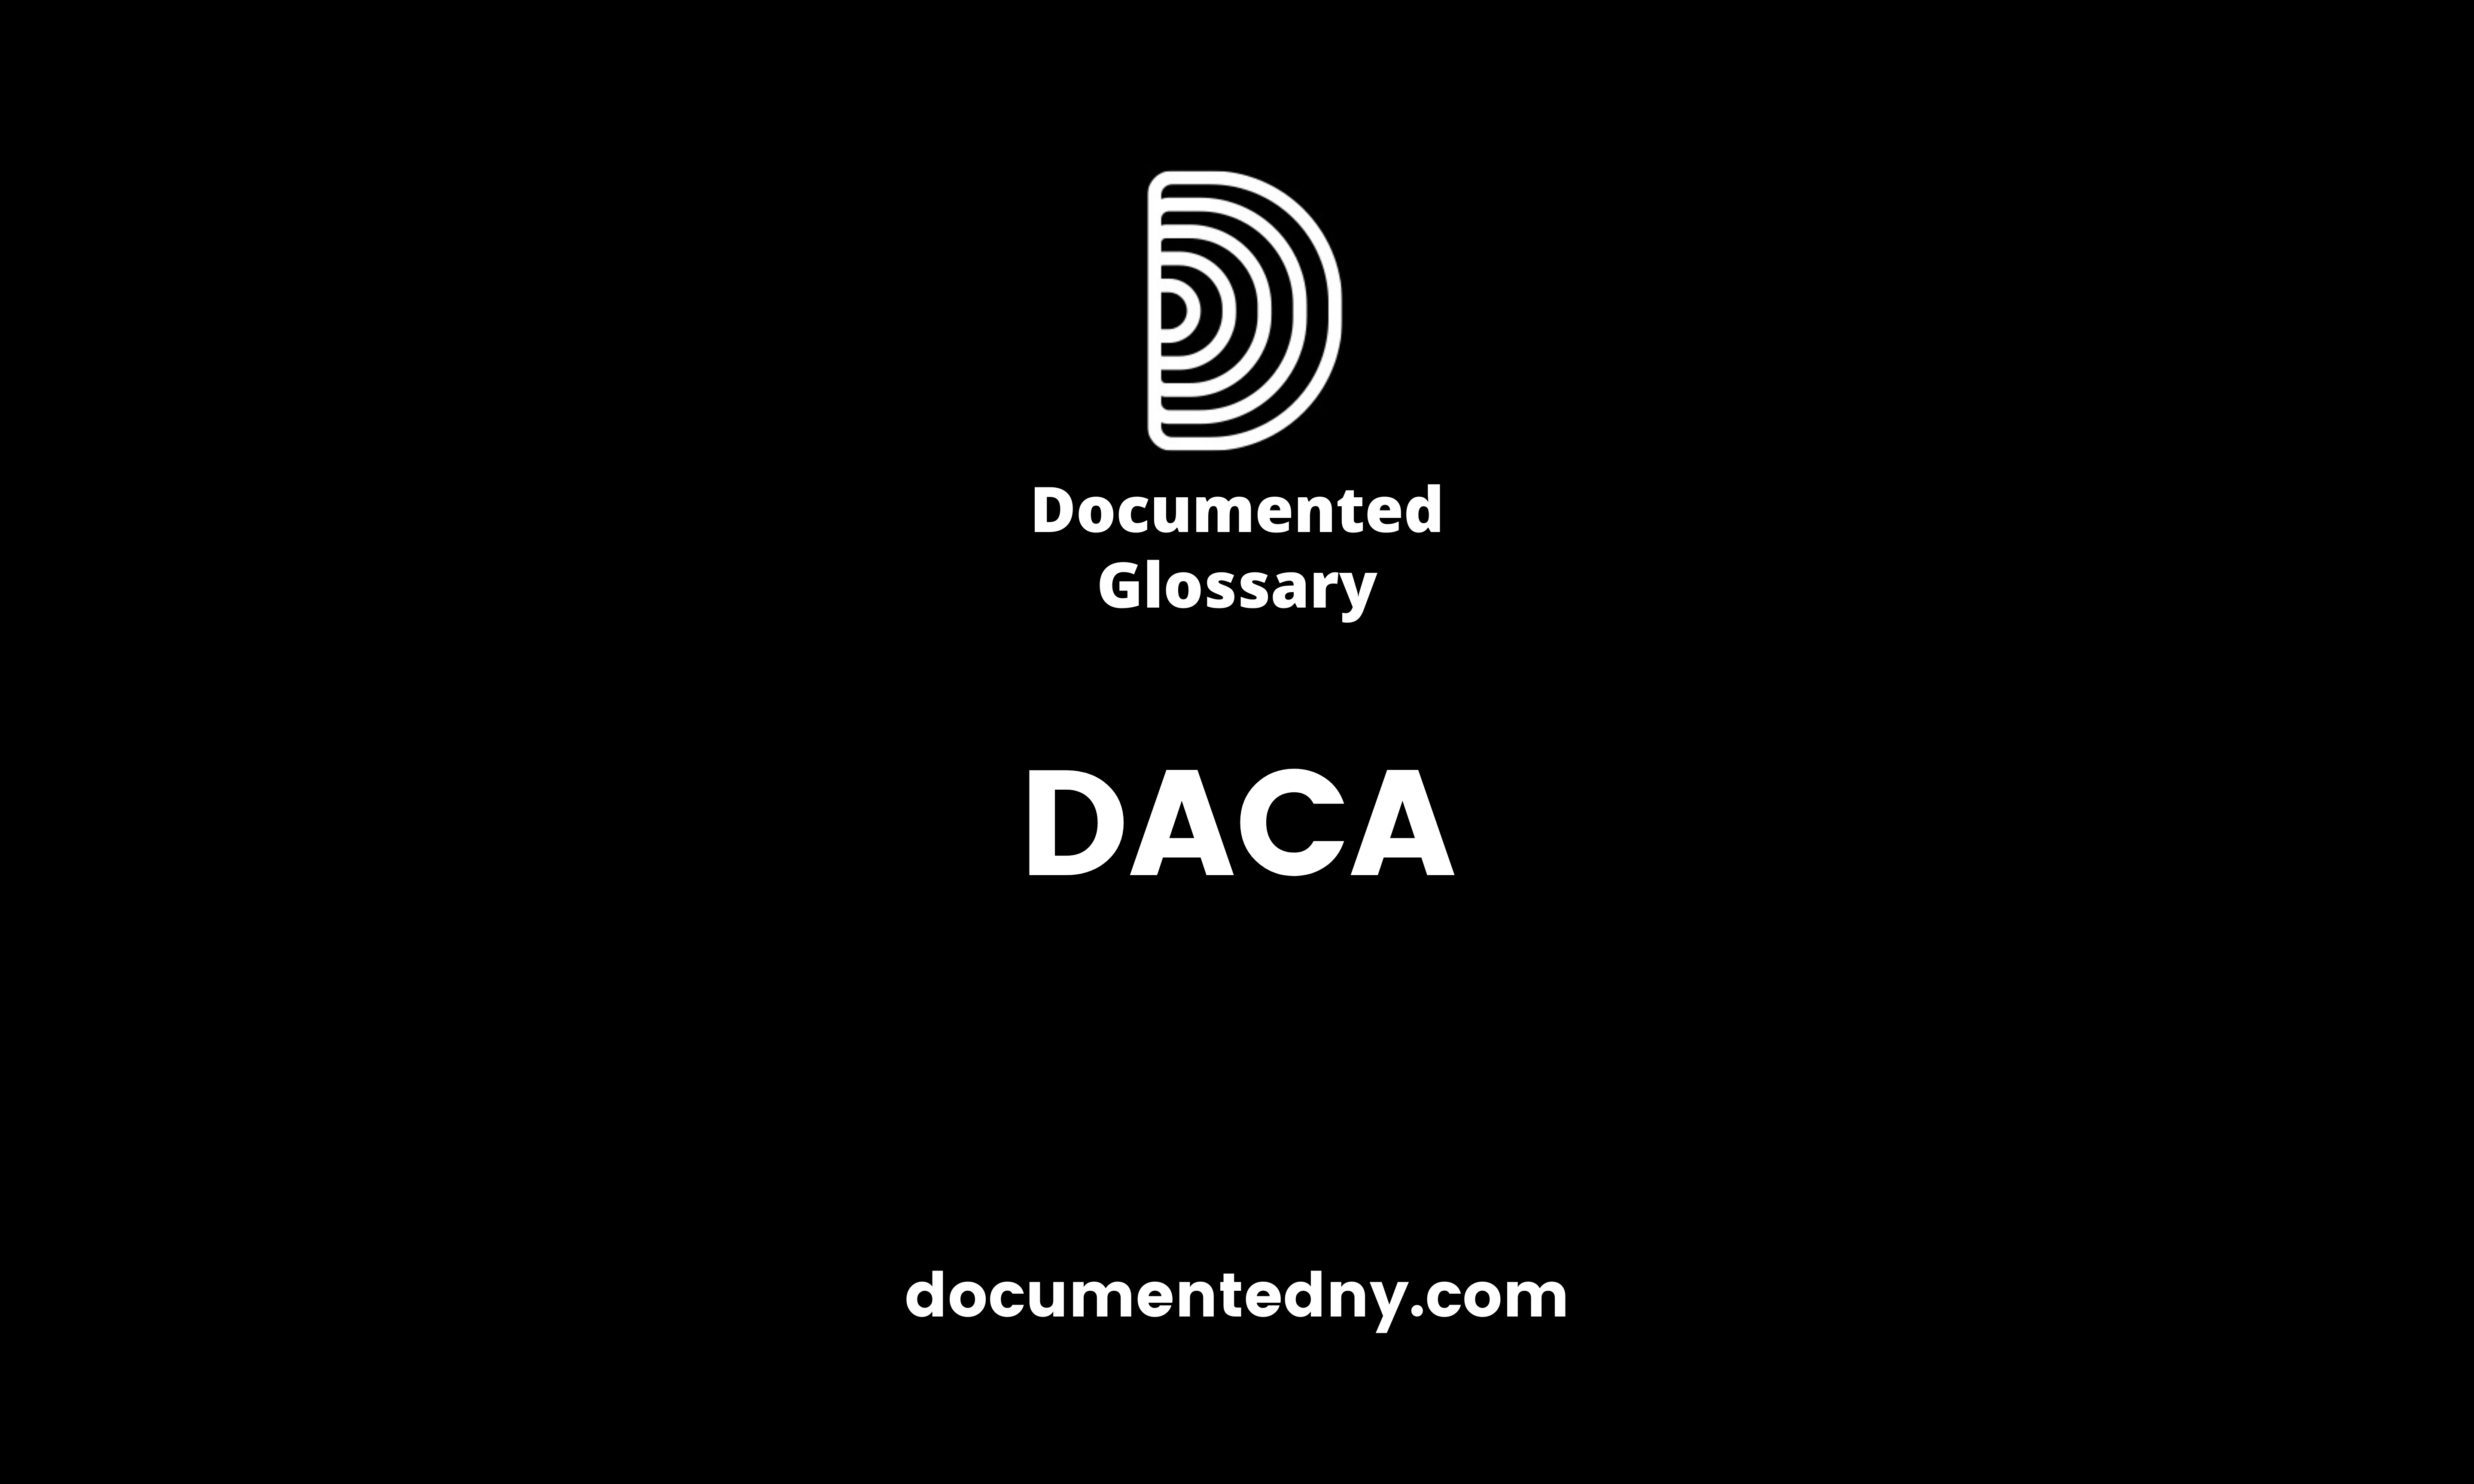 Here is a simple guide recompiling the latest developments on the legislation regarding the DACA program